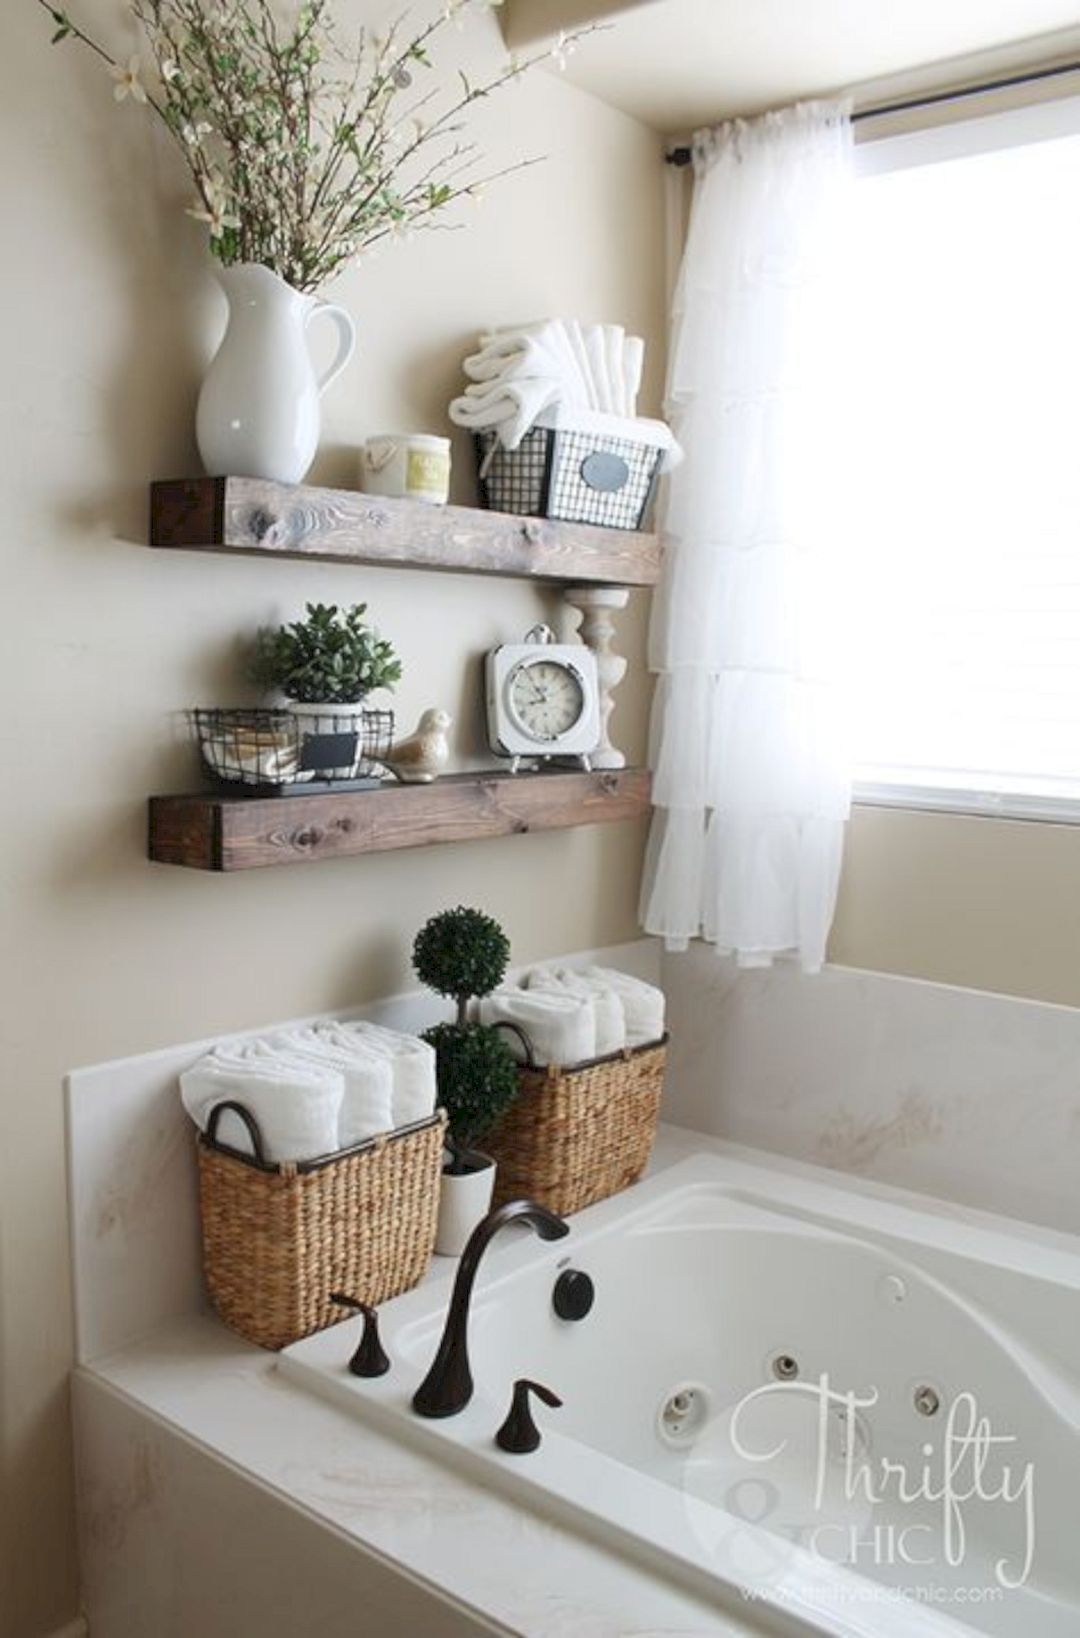 15 Bathroom Decorating Ideas You Can Have at Home https://www ... on master bathroom ideas, unique small bathroom storage, unique apartment ideas, unique vessel sink ideas, unique exterior house designs, unique bathroom themes, unique kitchen remodel, unique bathroom accessory sets, unique antique bathroom vanities, unique roofing ideas, unique kitchen ideas, unique showers, unique brick house designs, different bathroom ideas, unique upholstery ideas, unique bathroom stalls, bathroom makeover ideas, man's bathroom ideas, ocean themed bathroom ideas, unique vanities for bathrooms,